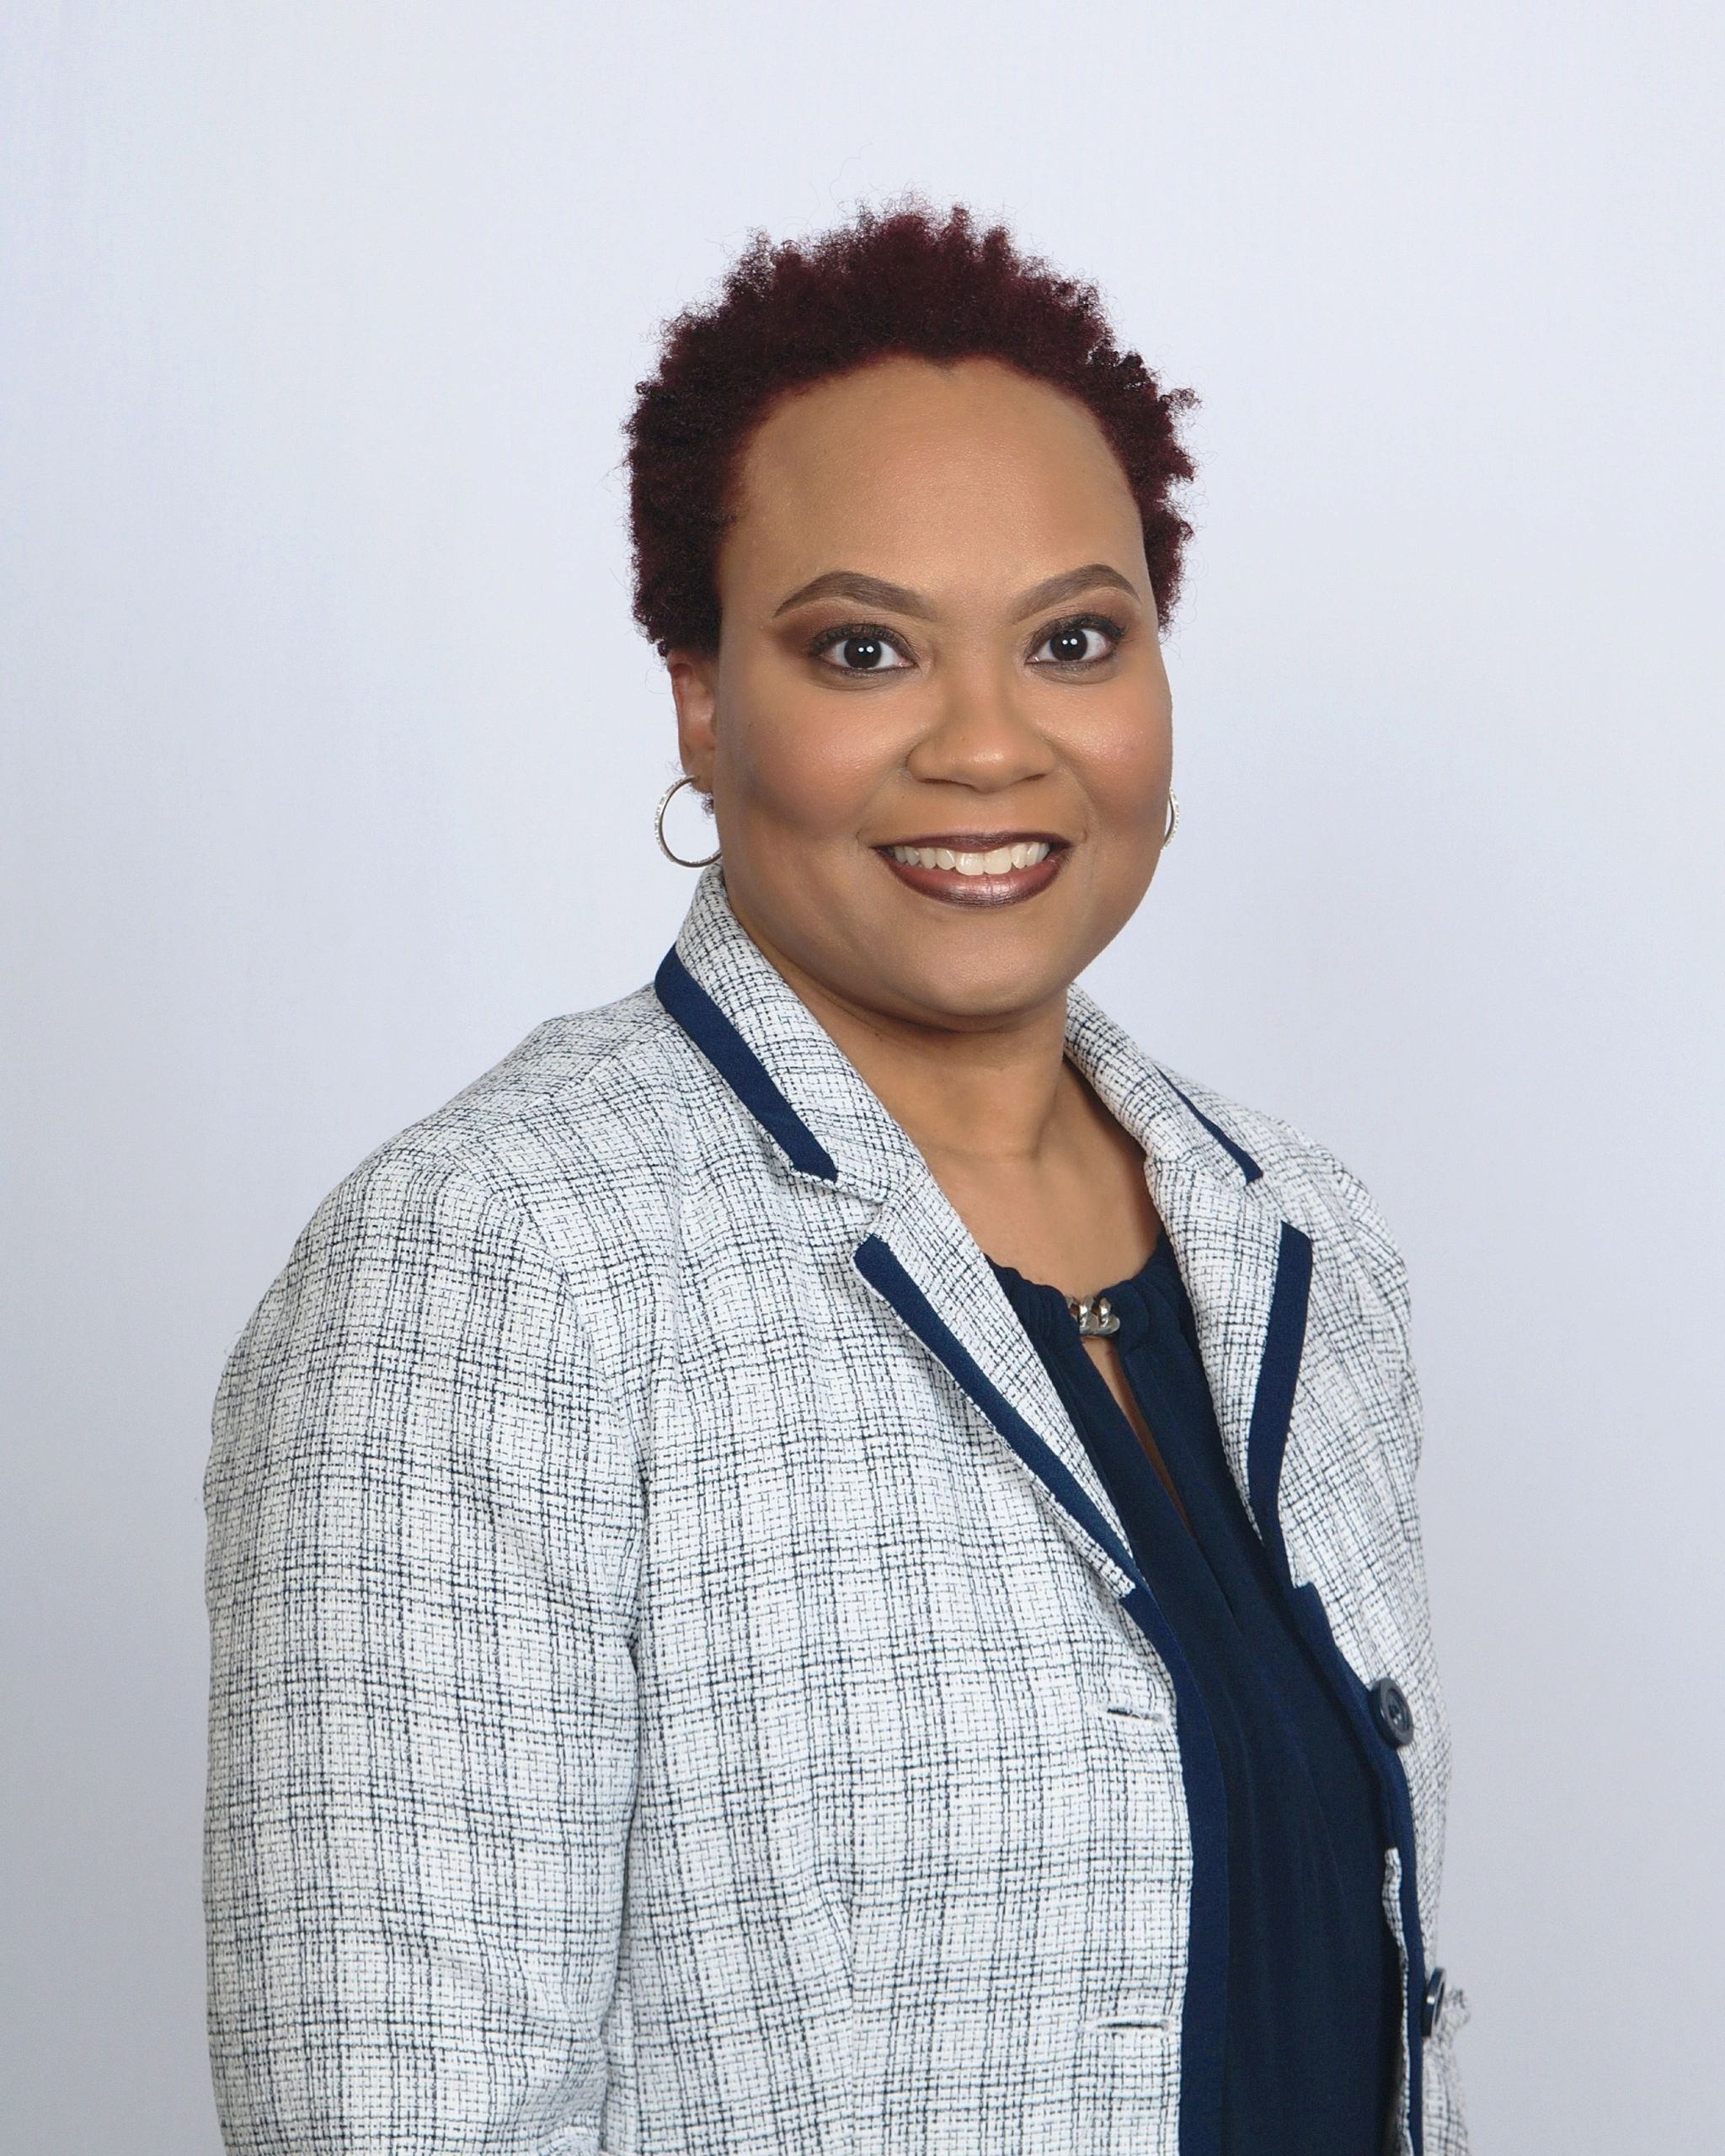 Lequita Gray, CEO, Enrolled Agent